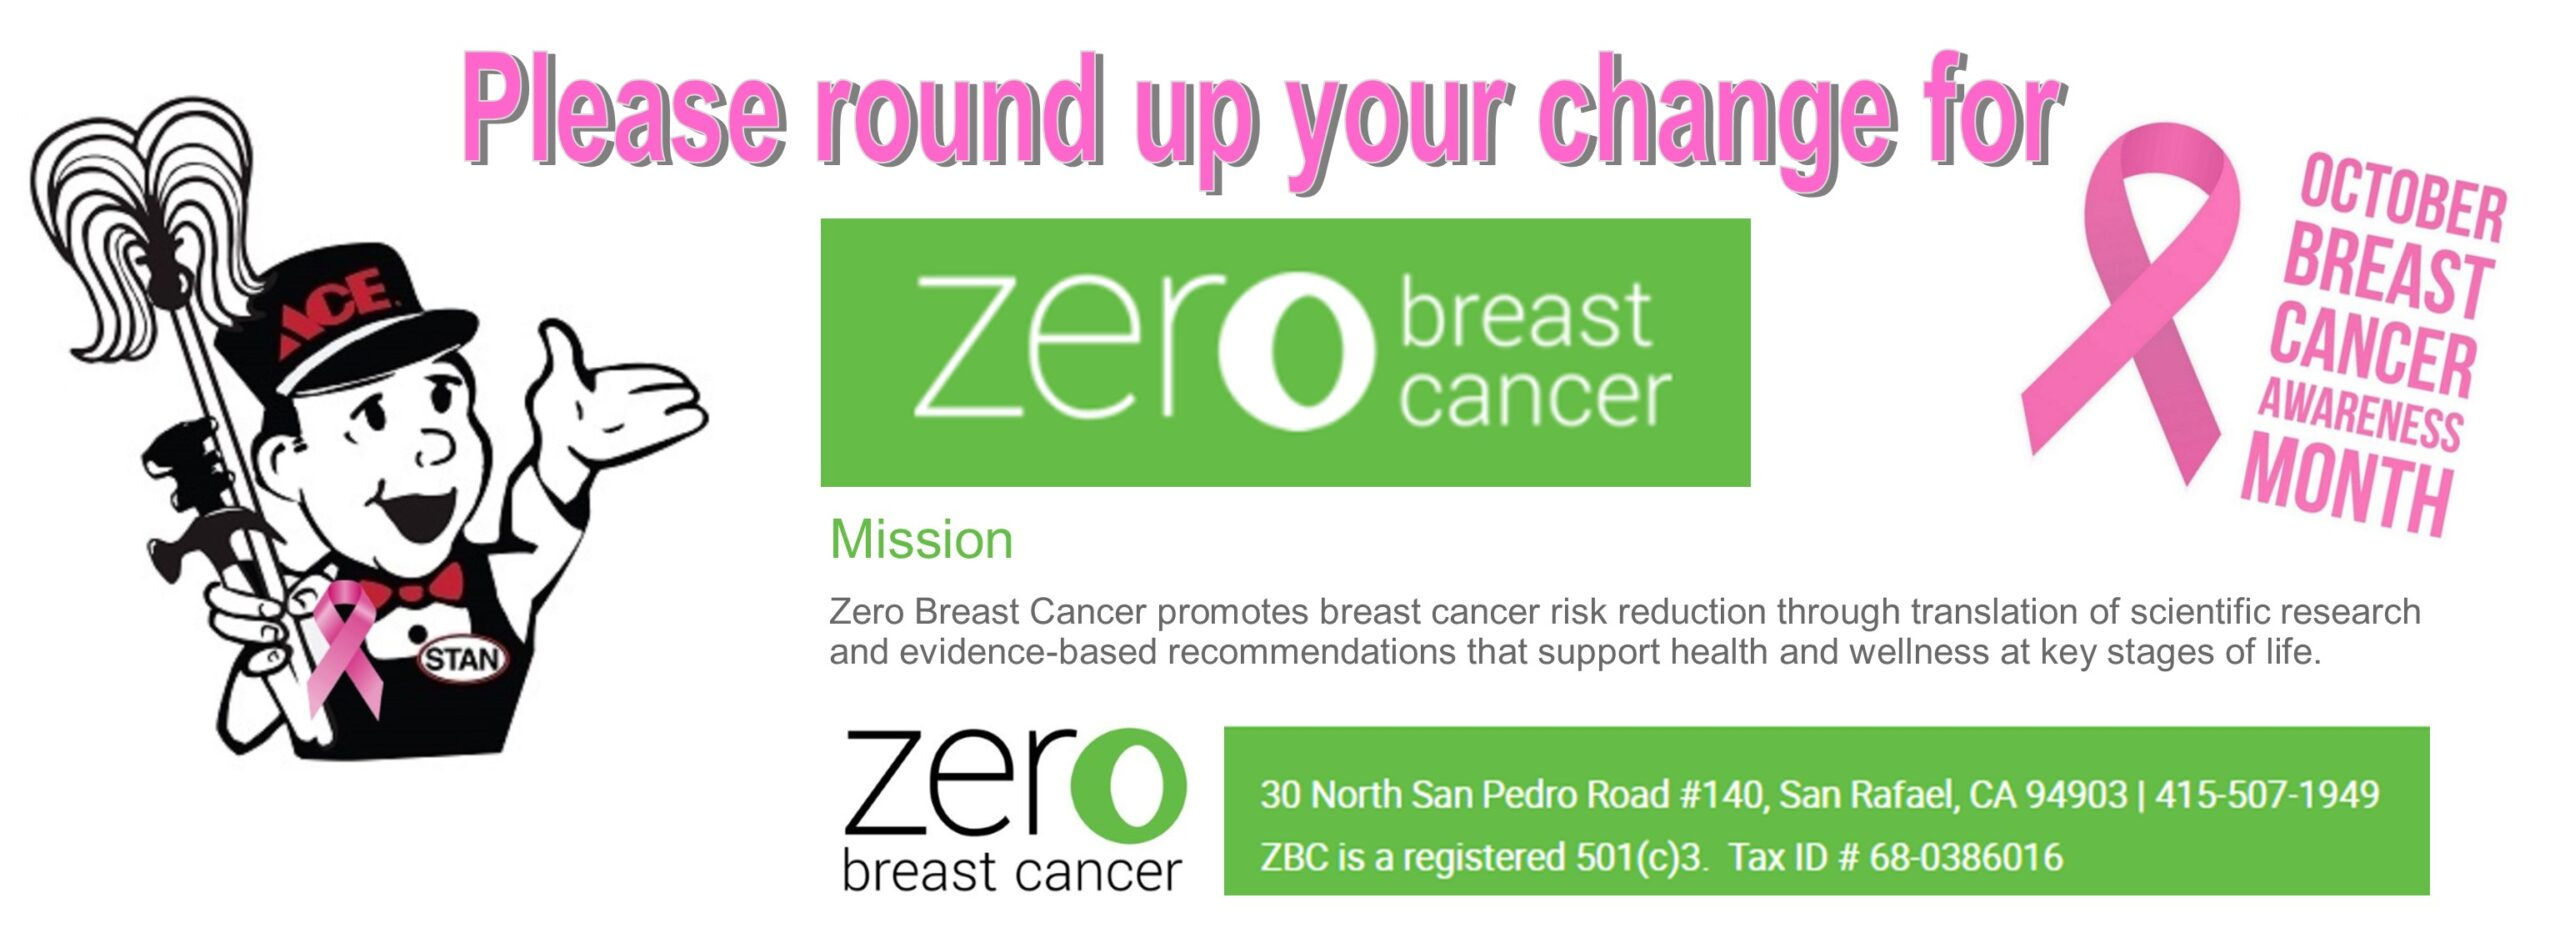 Round Up Your Change for Zero Breast Cancer